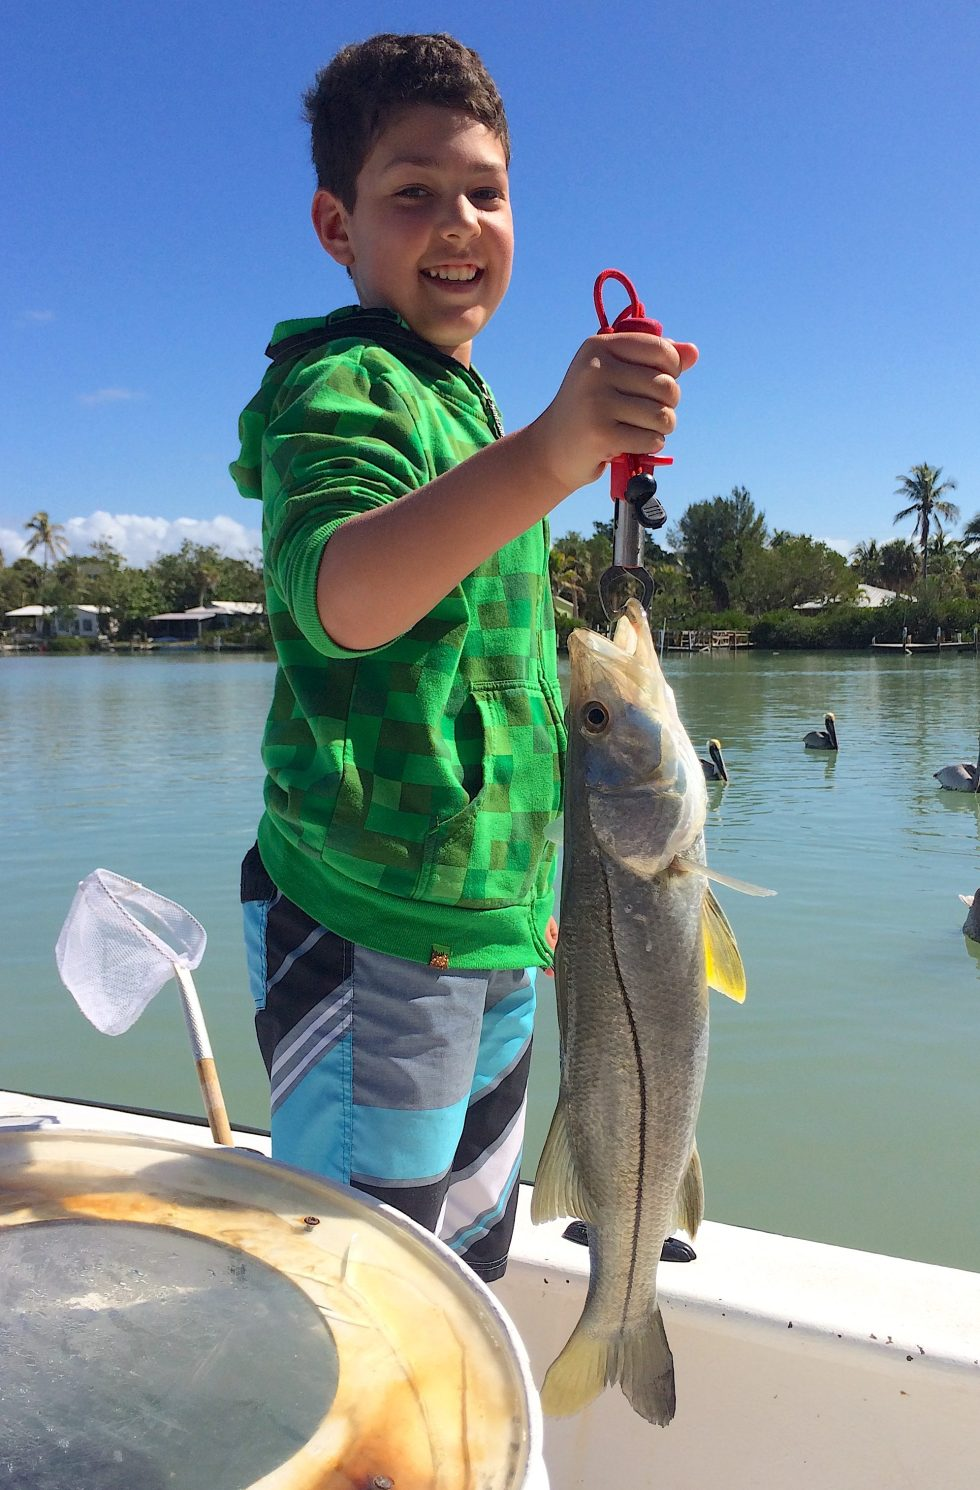 Snook, Passes, Docks,, Catch & Release, Sanibel Fishing & Captiva Fishing, Sanibel Island, Saturday, February 10, 2018.